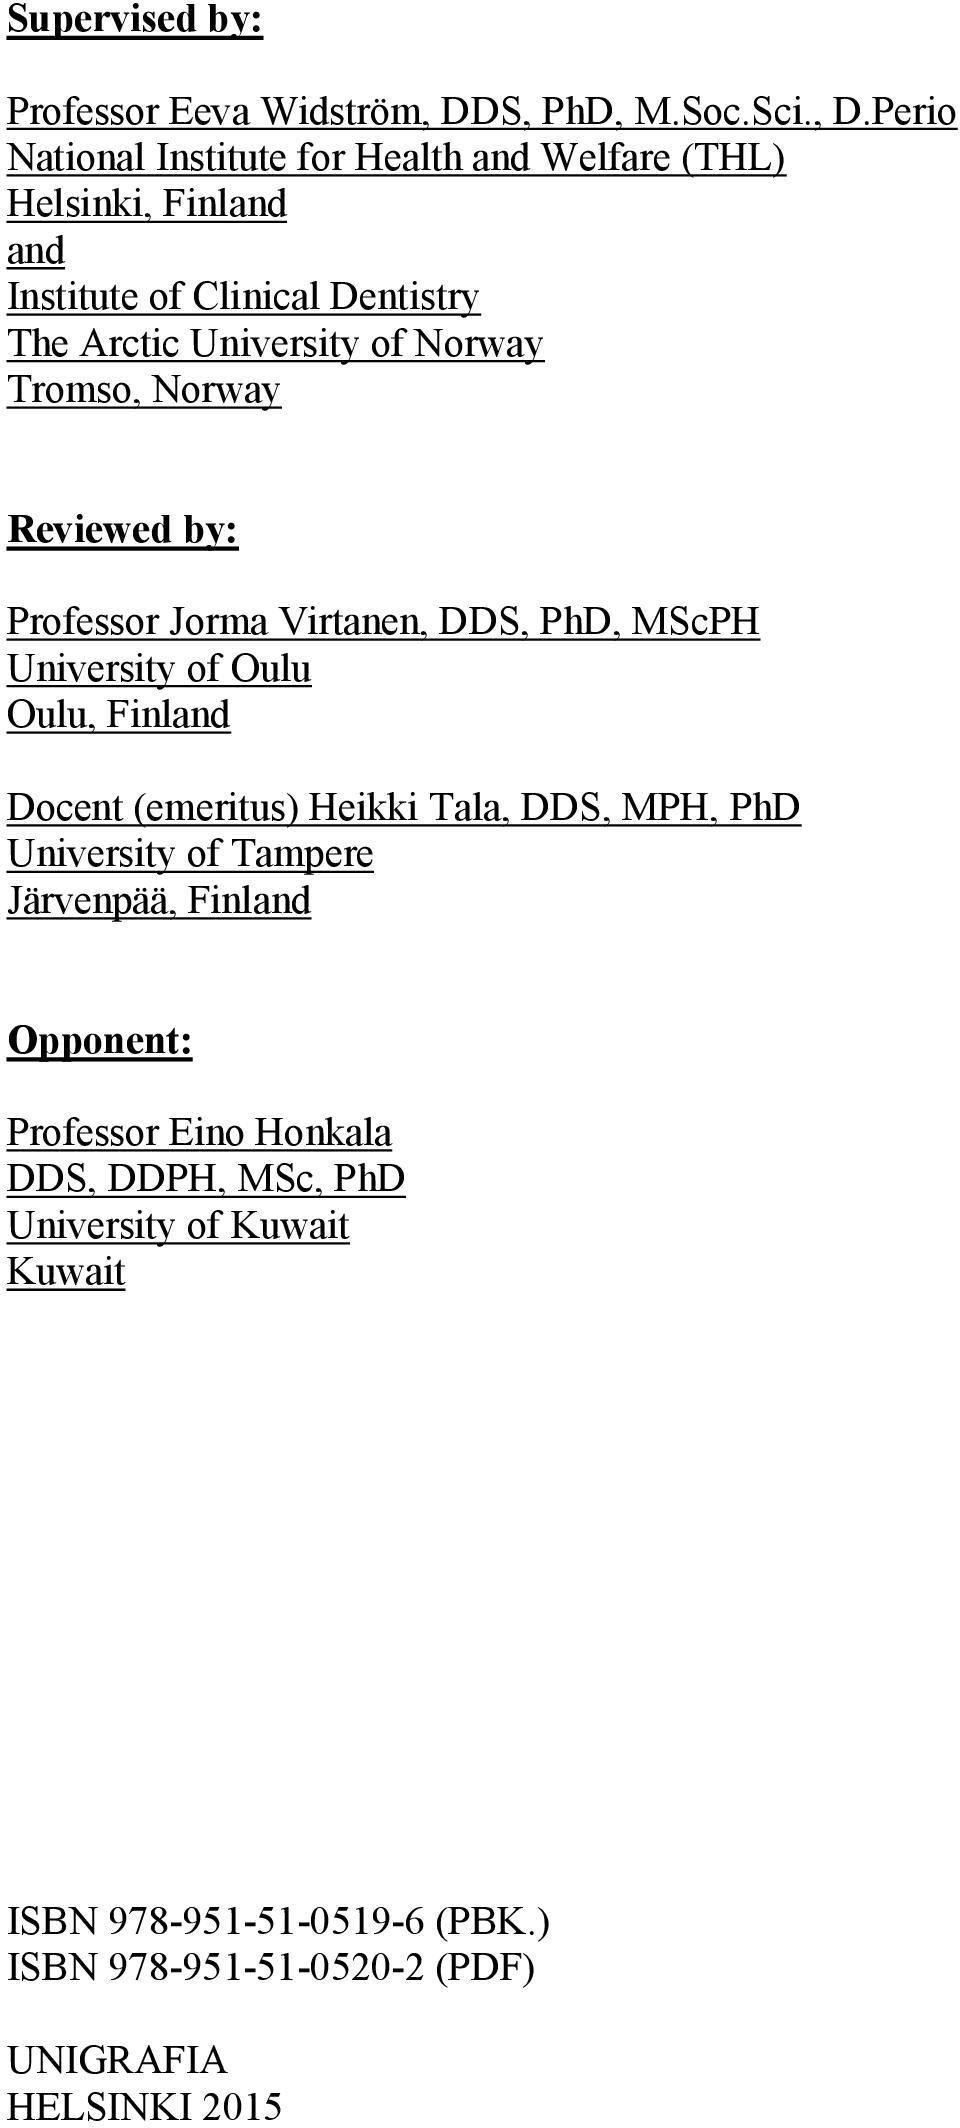 Perio National Institute for Health and Welfare (THL) Helsinki, Finland and Institute of Clinical Dentistry The Arctic University of